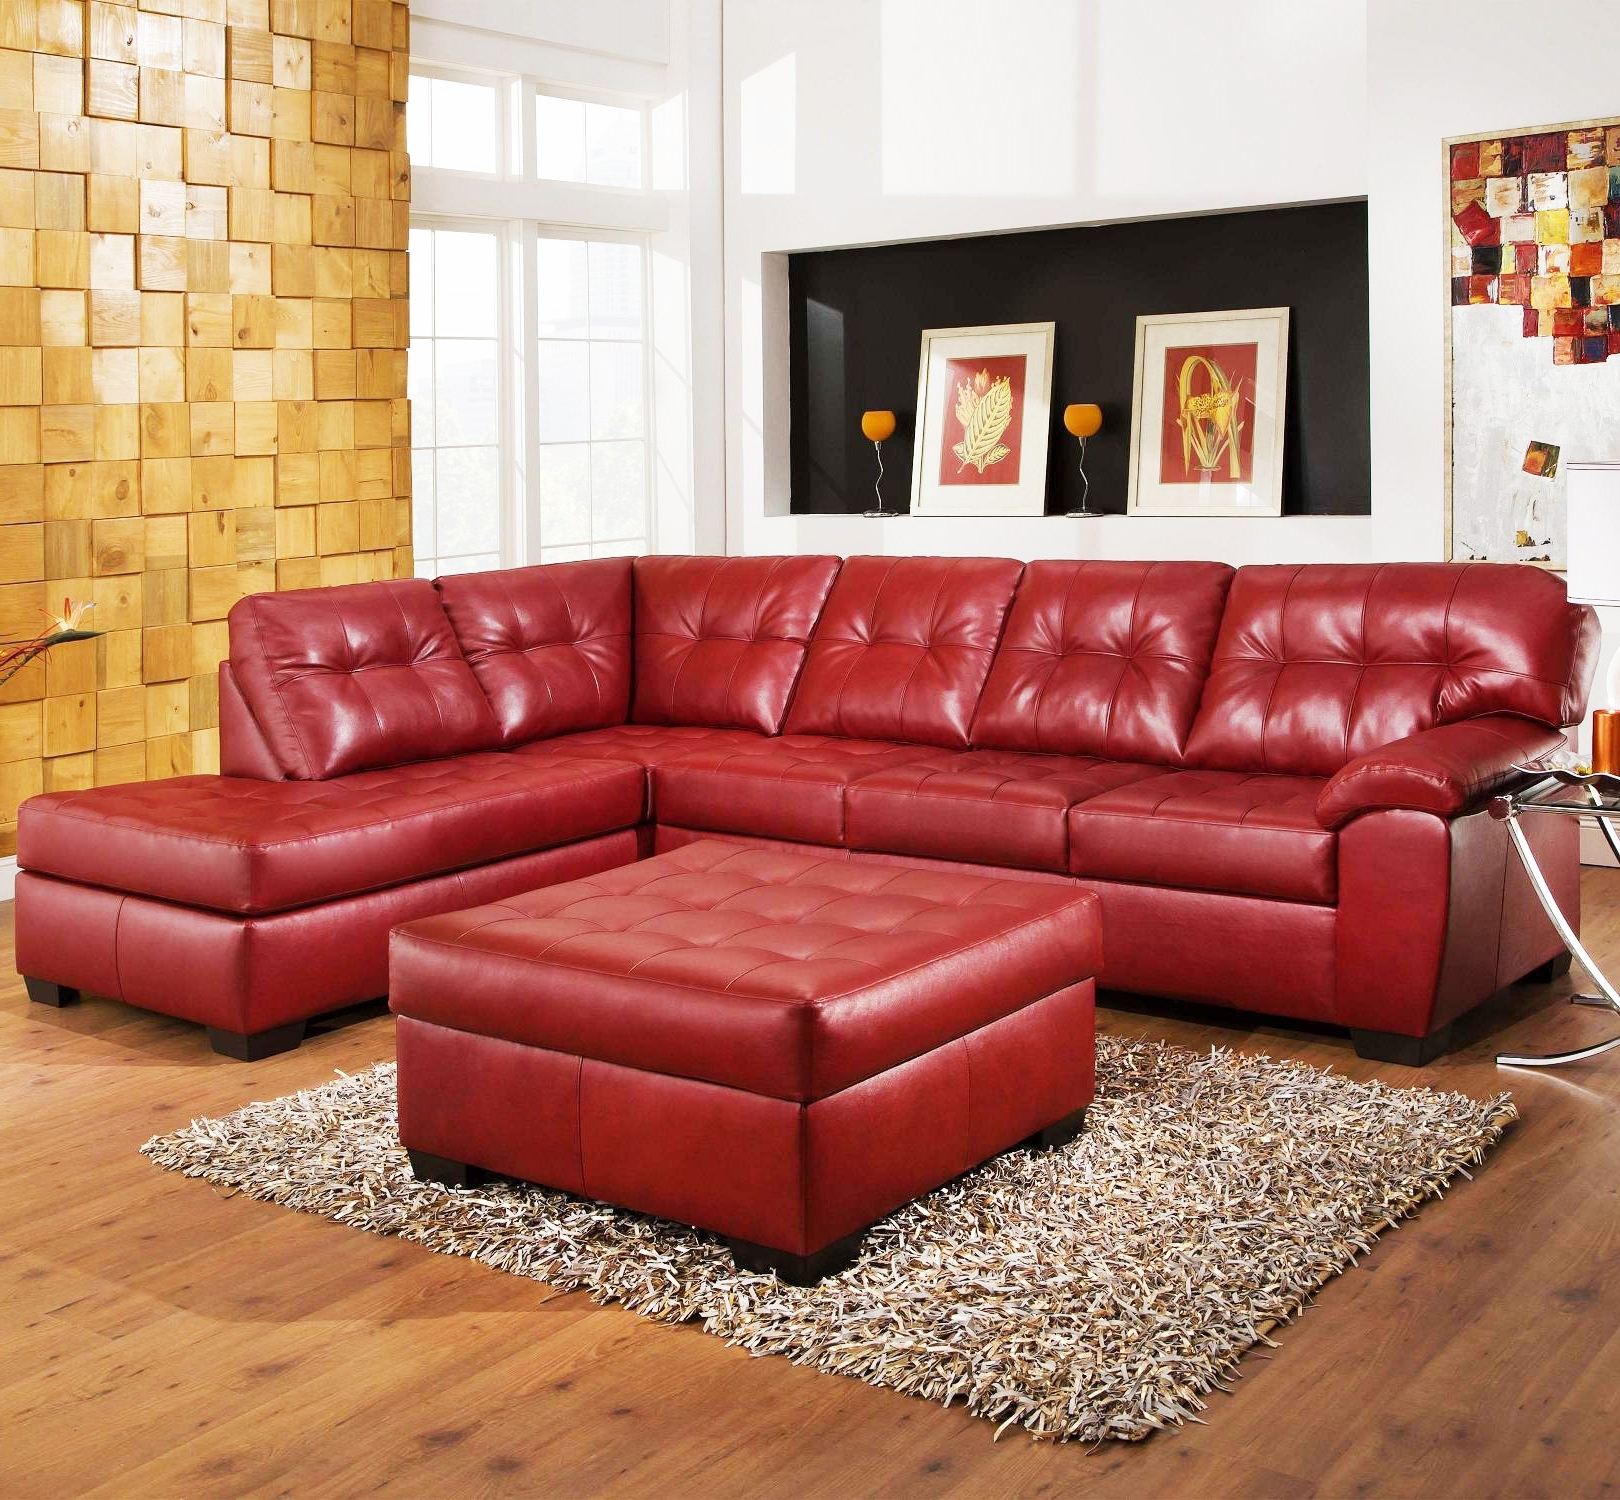 Living Room: Astonishing Rooms To Go Sectional Leather Havertys Regarding Latest Sectional Sofas At Rooms To Go (View 6 of 20)